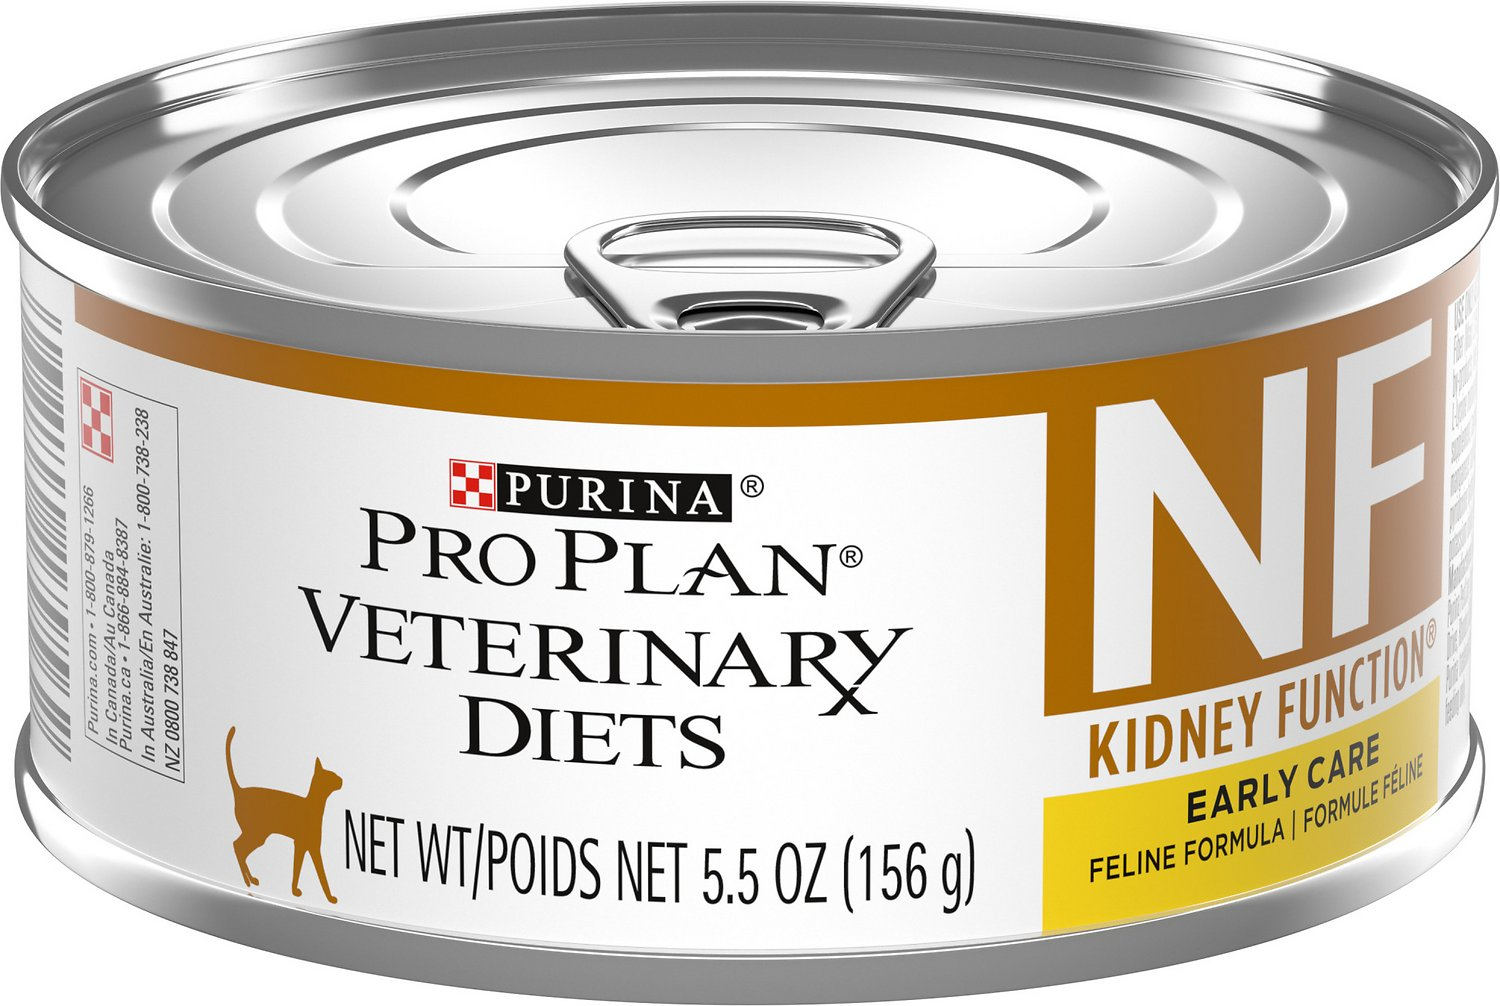 Purina Pro Plan Nf Kidney Function Cat Food